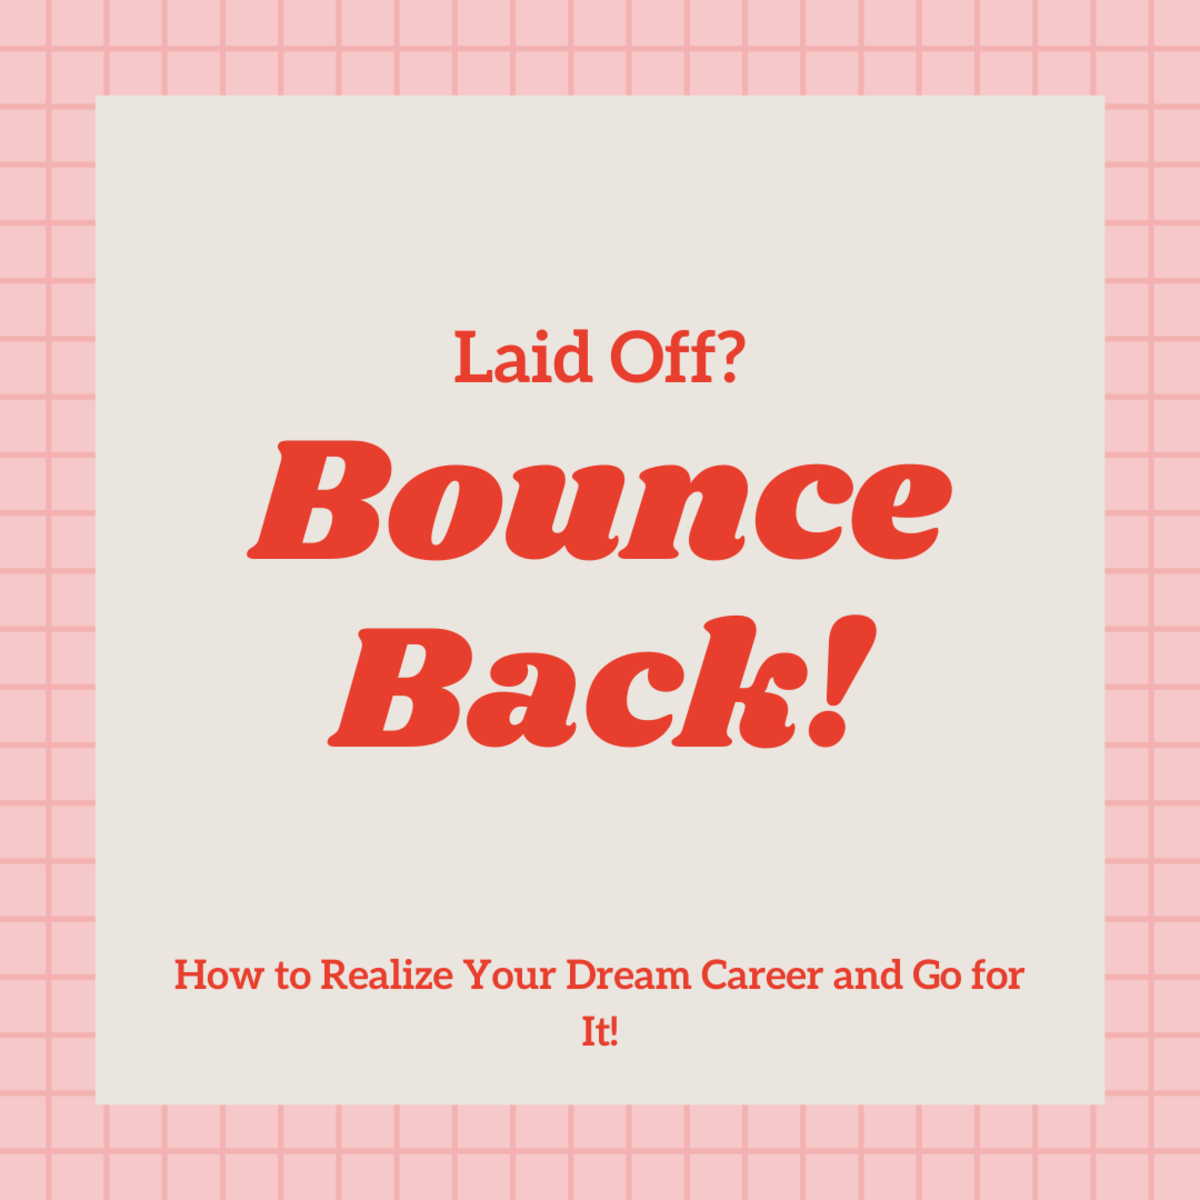 8 Ways to Bounce Back After a Job Loss: Realize Your Dream Career and Go for It!